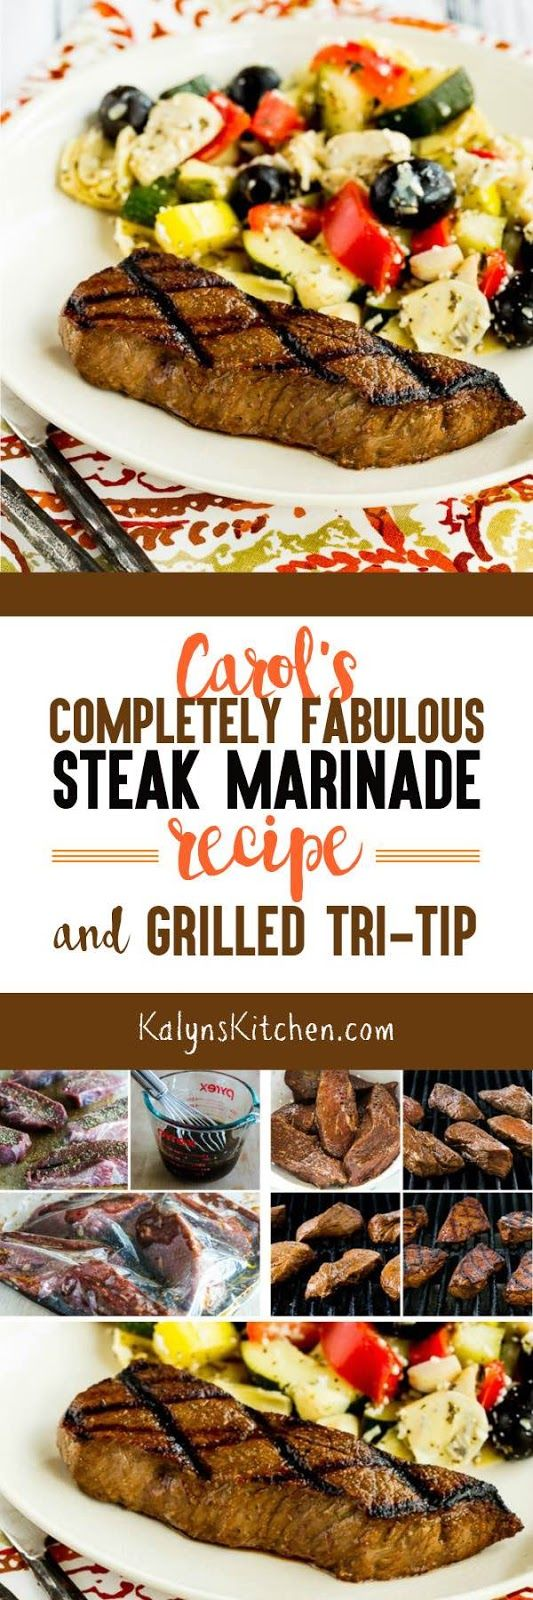 I got the recipe for Carols Completely Fabulous Steak Marinade and Grilled Tri-Tip years ago from a woman who used to be my neighbor, and I've been making it ever since! Thanks Carol! And this tasty recipe is low-carb, gluten-free, and South Beach Diet friendly, and if you use homemade Worcestershire (link included) it can be Paleo and Whole 30 as well.  [found on KalynsKitchen.com]